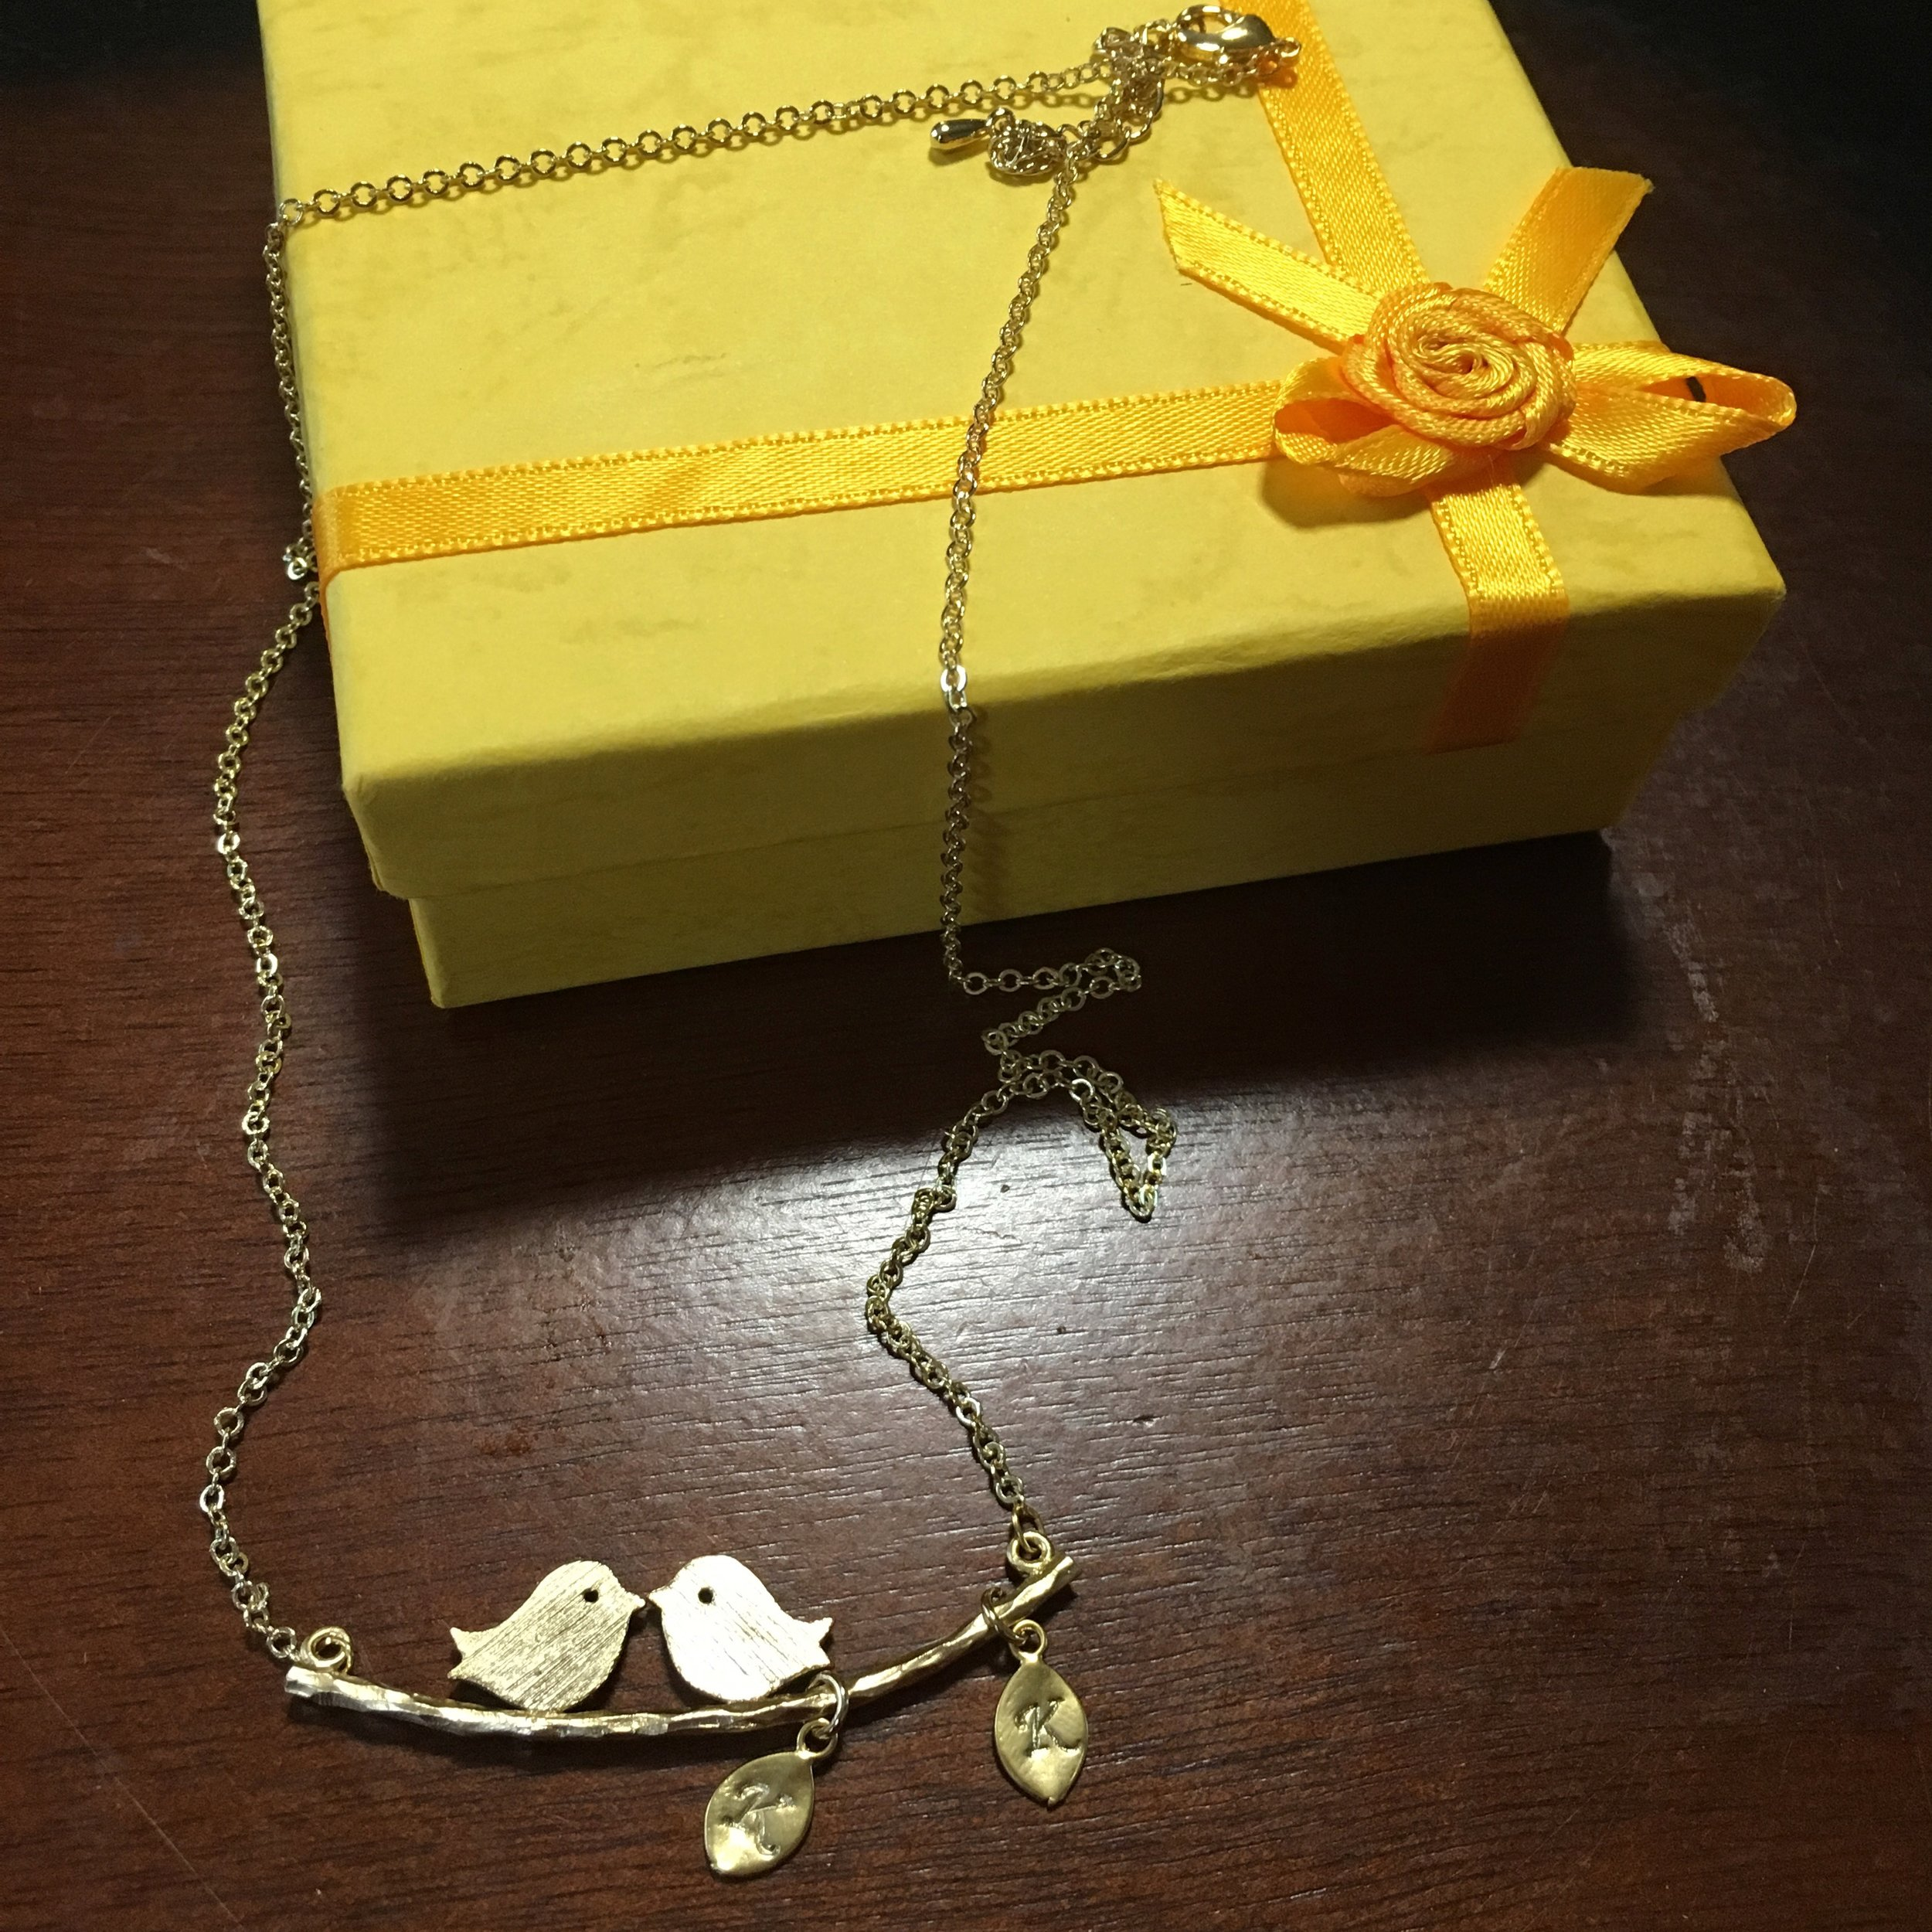 A beautiful - Mother's Day gift from my sweet daughter. I had a lovely day, but missed her very much.